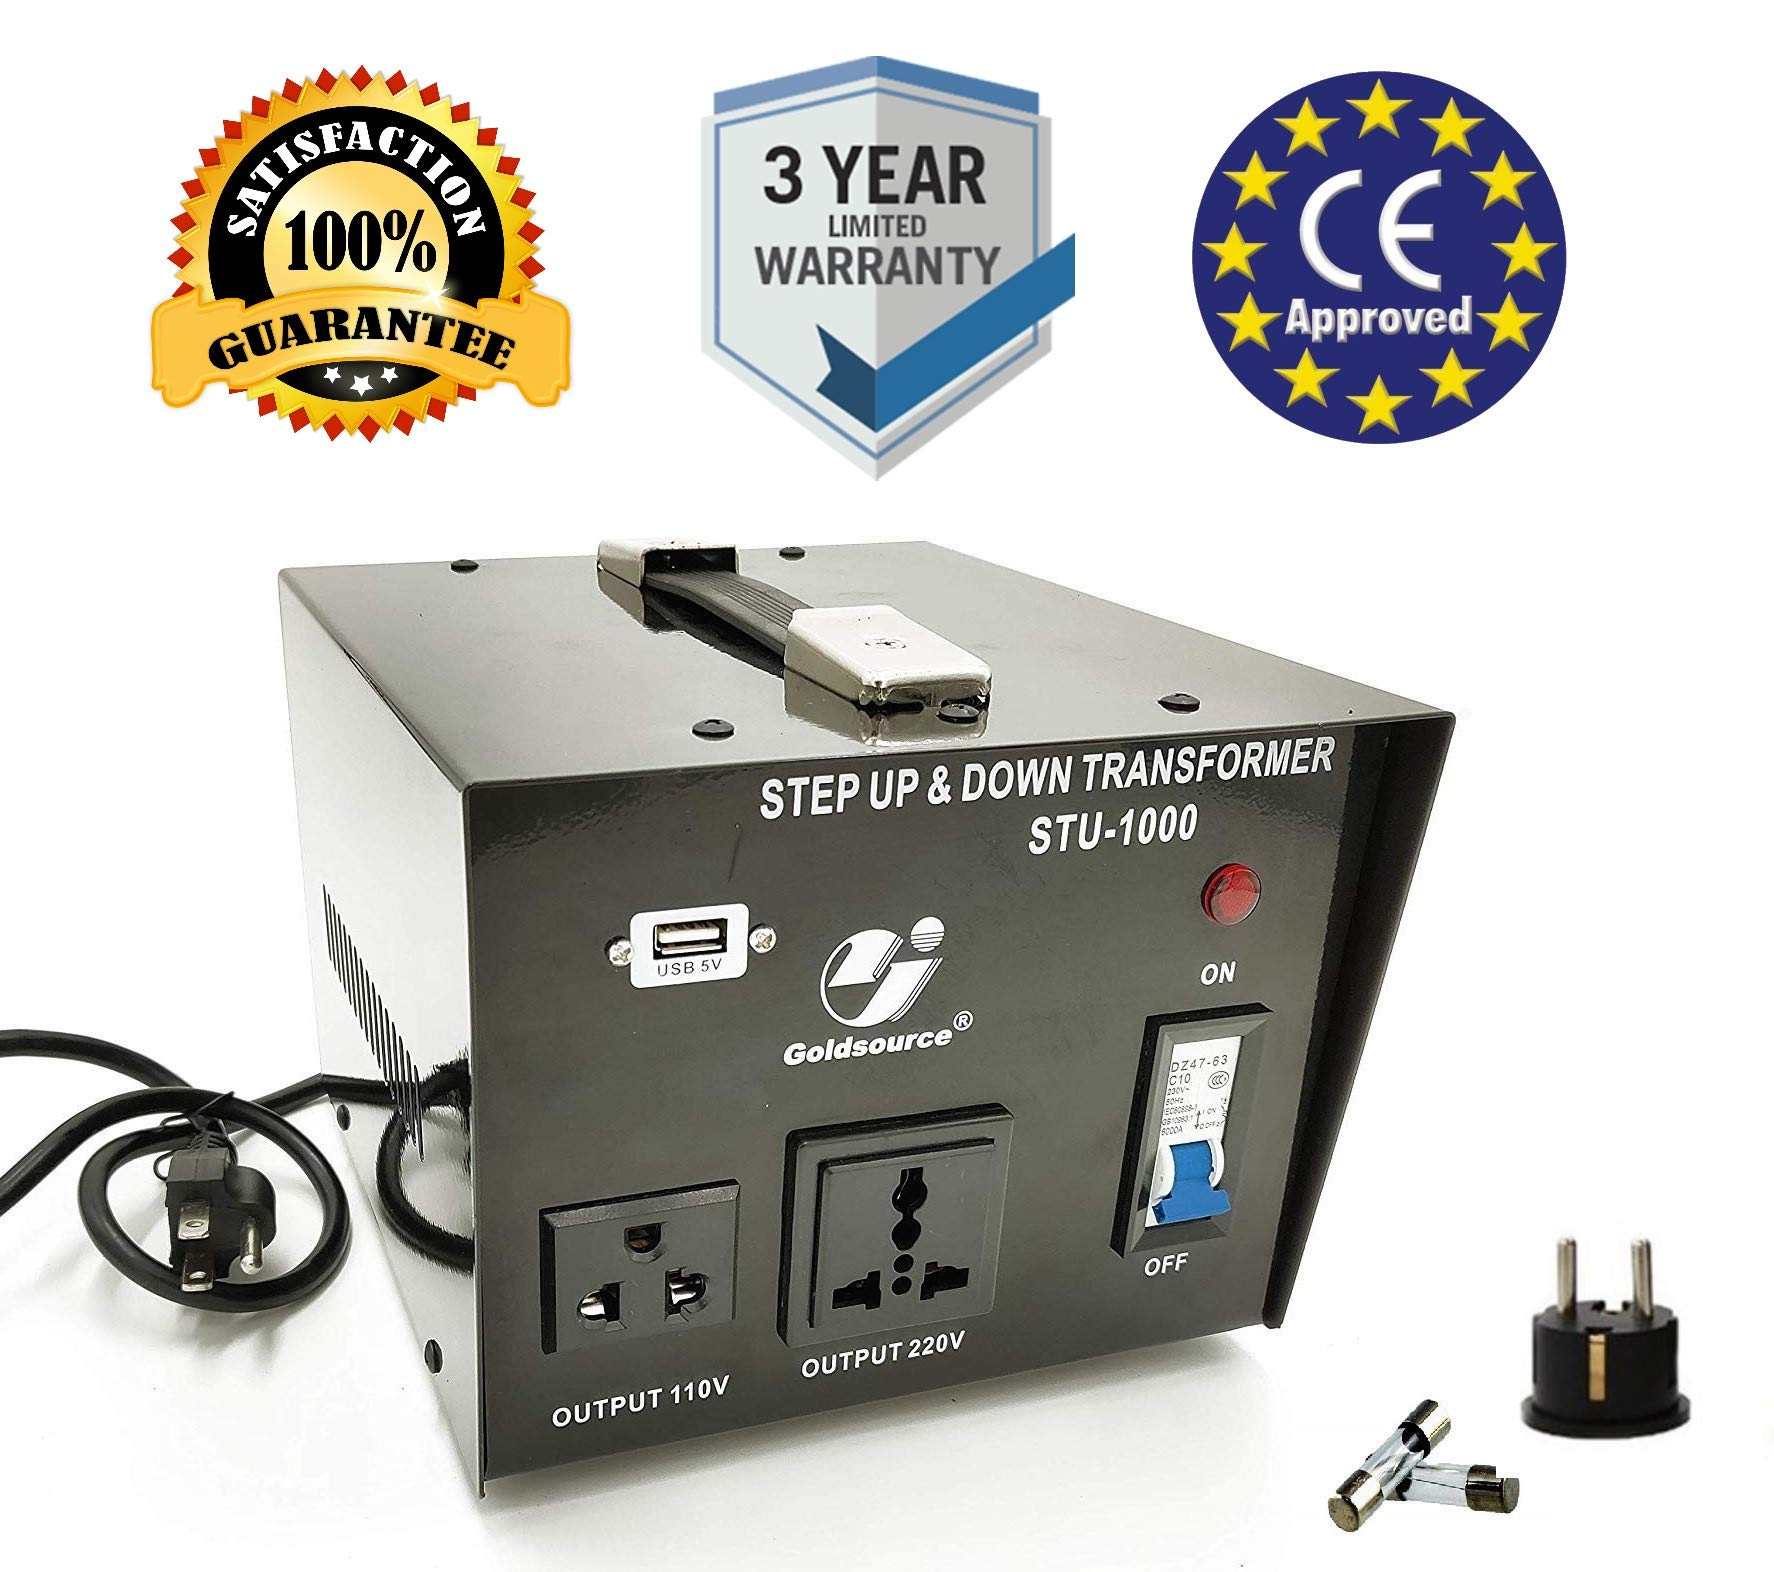 Goldsource 1000W Step Up & Step Down Voltage Transformer Converter, STU-1000 Heavy Duty Continuous AC 110-120V to 220-240V Converter with US Standard & Universal Outlets and DC 5V USB Port, 1000 Watt